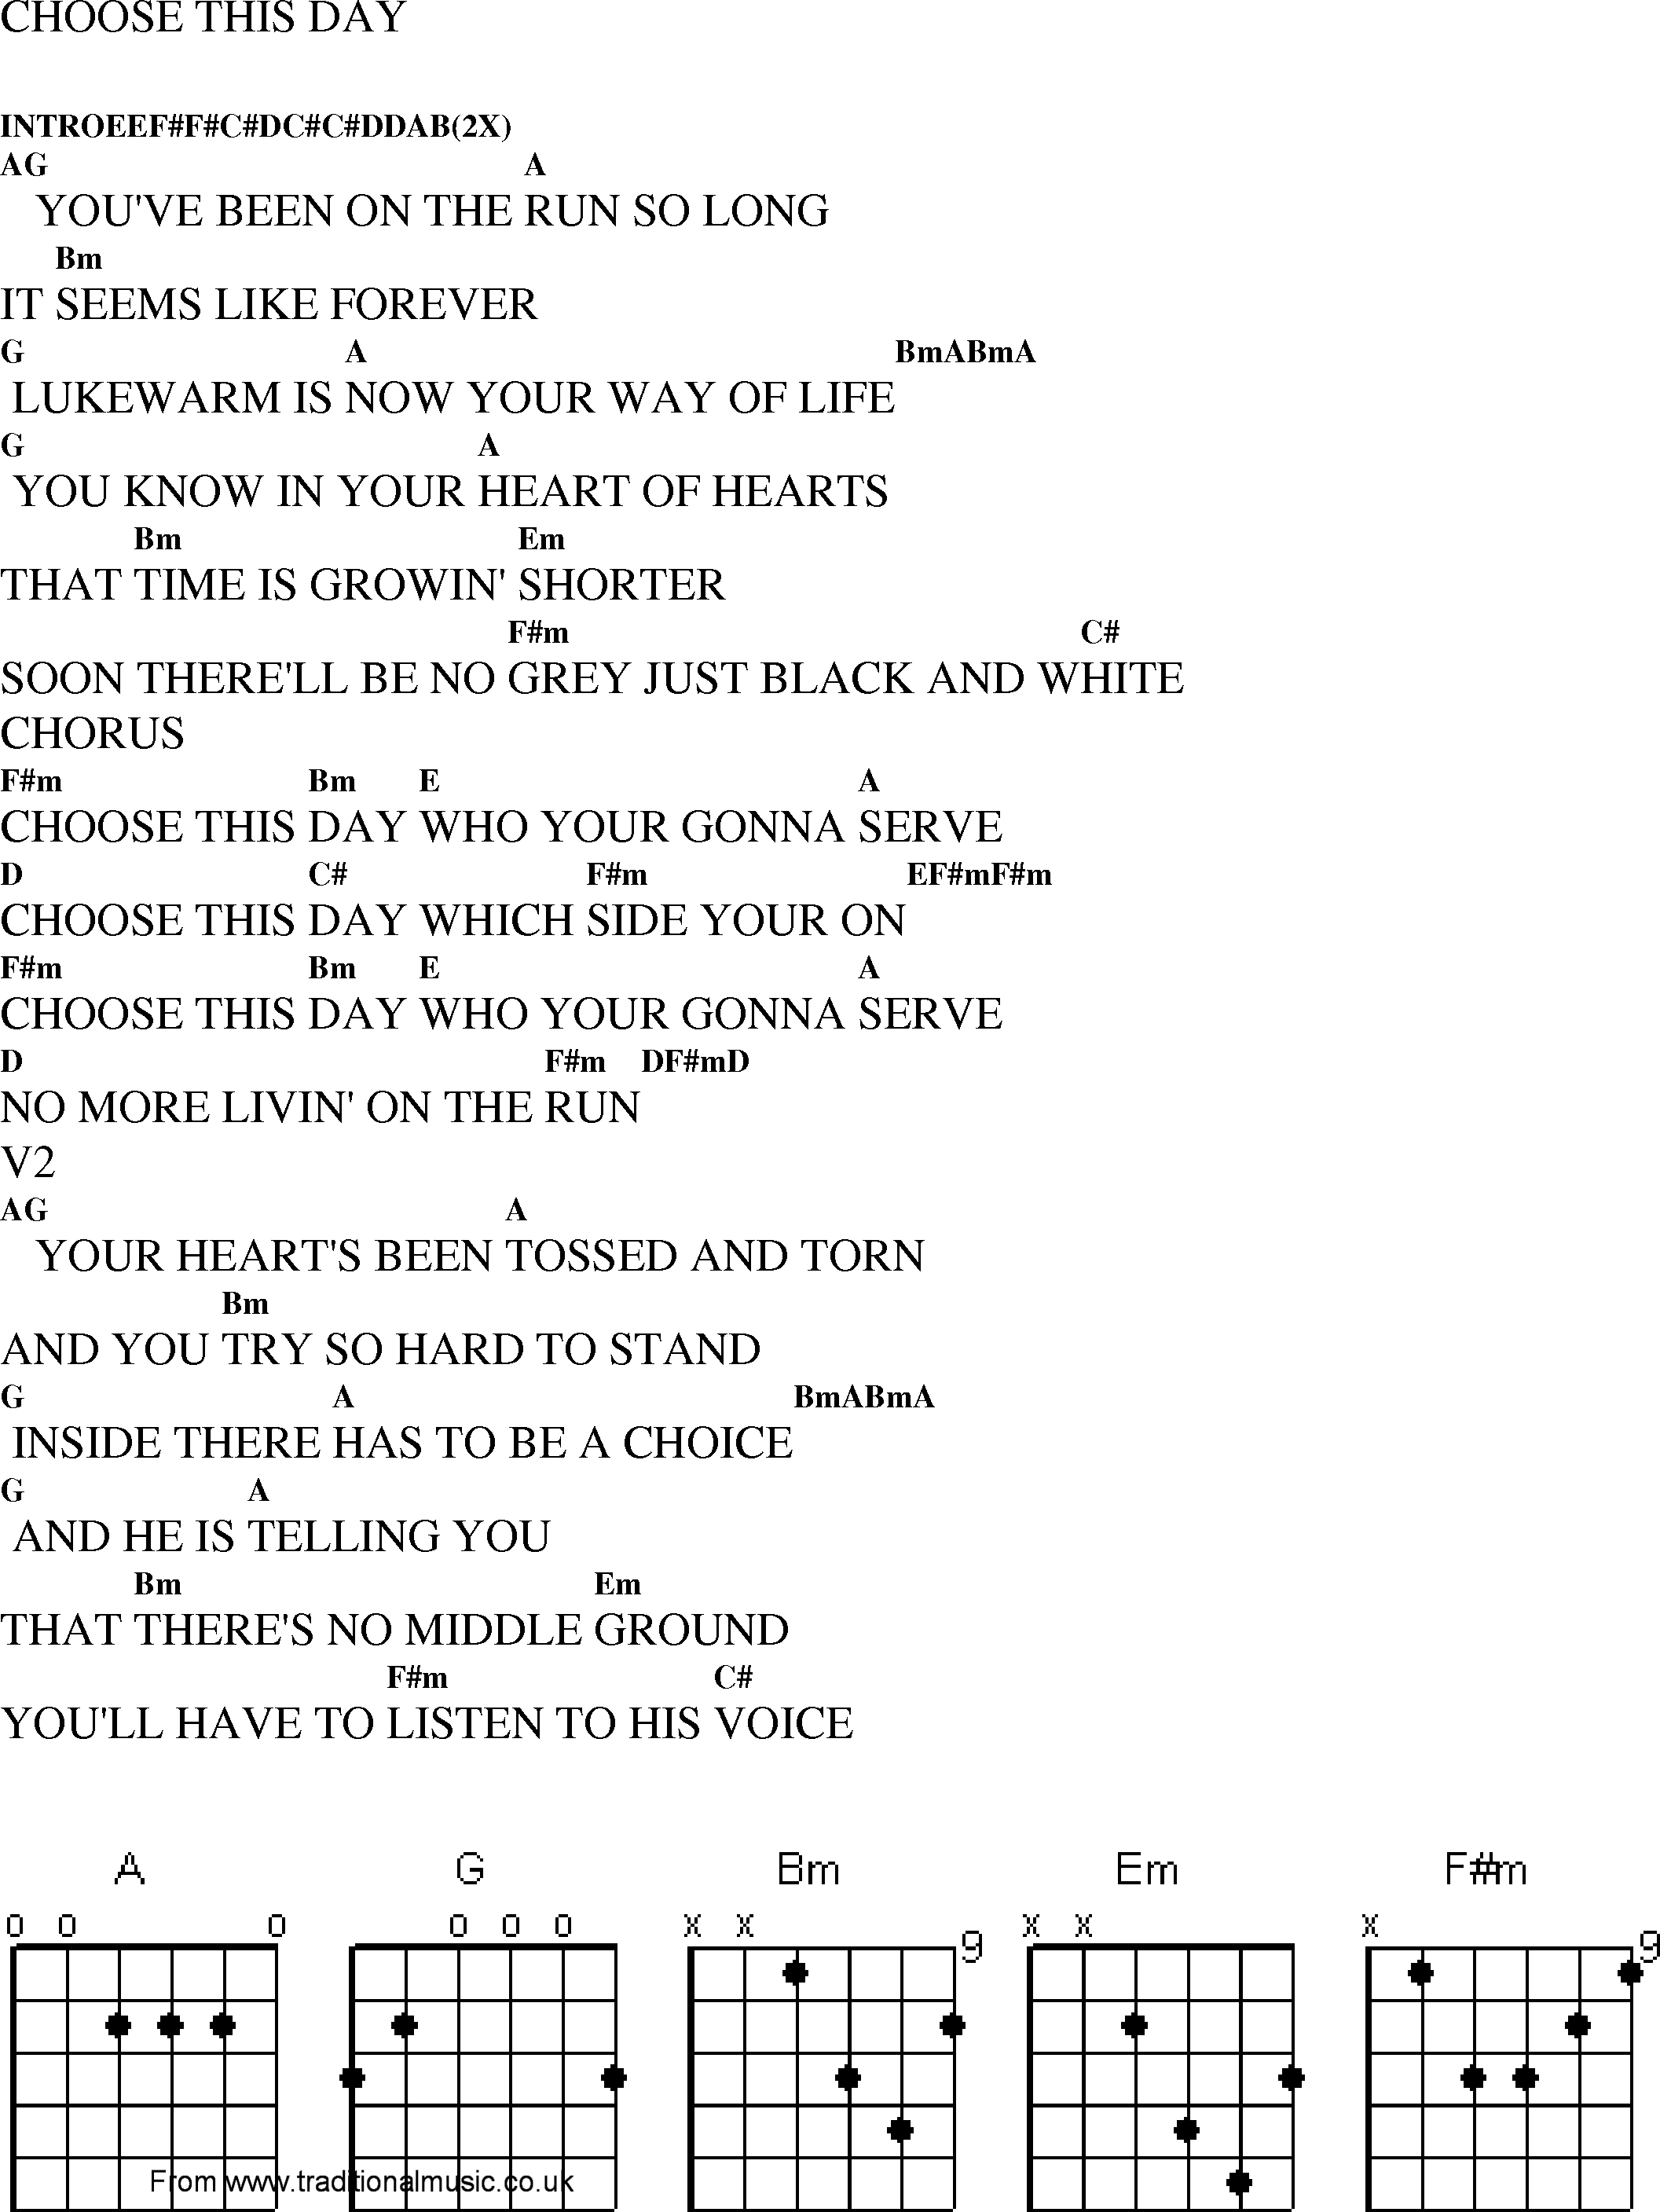 Christian Gospel Worship Song Lyrics with Chords   Choose This Day